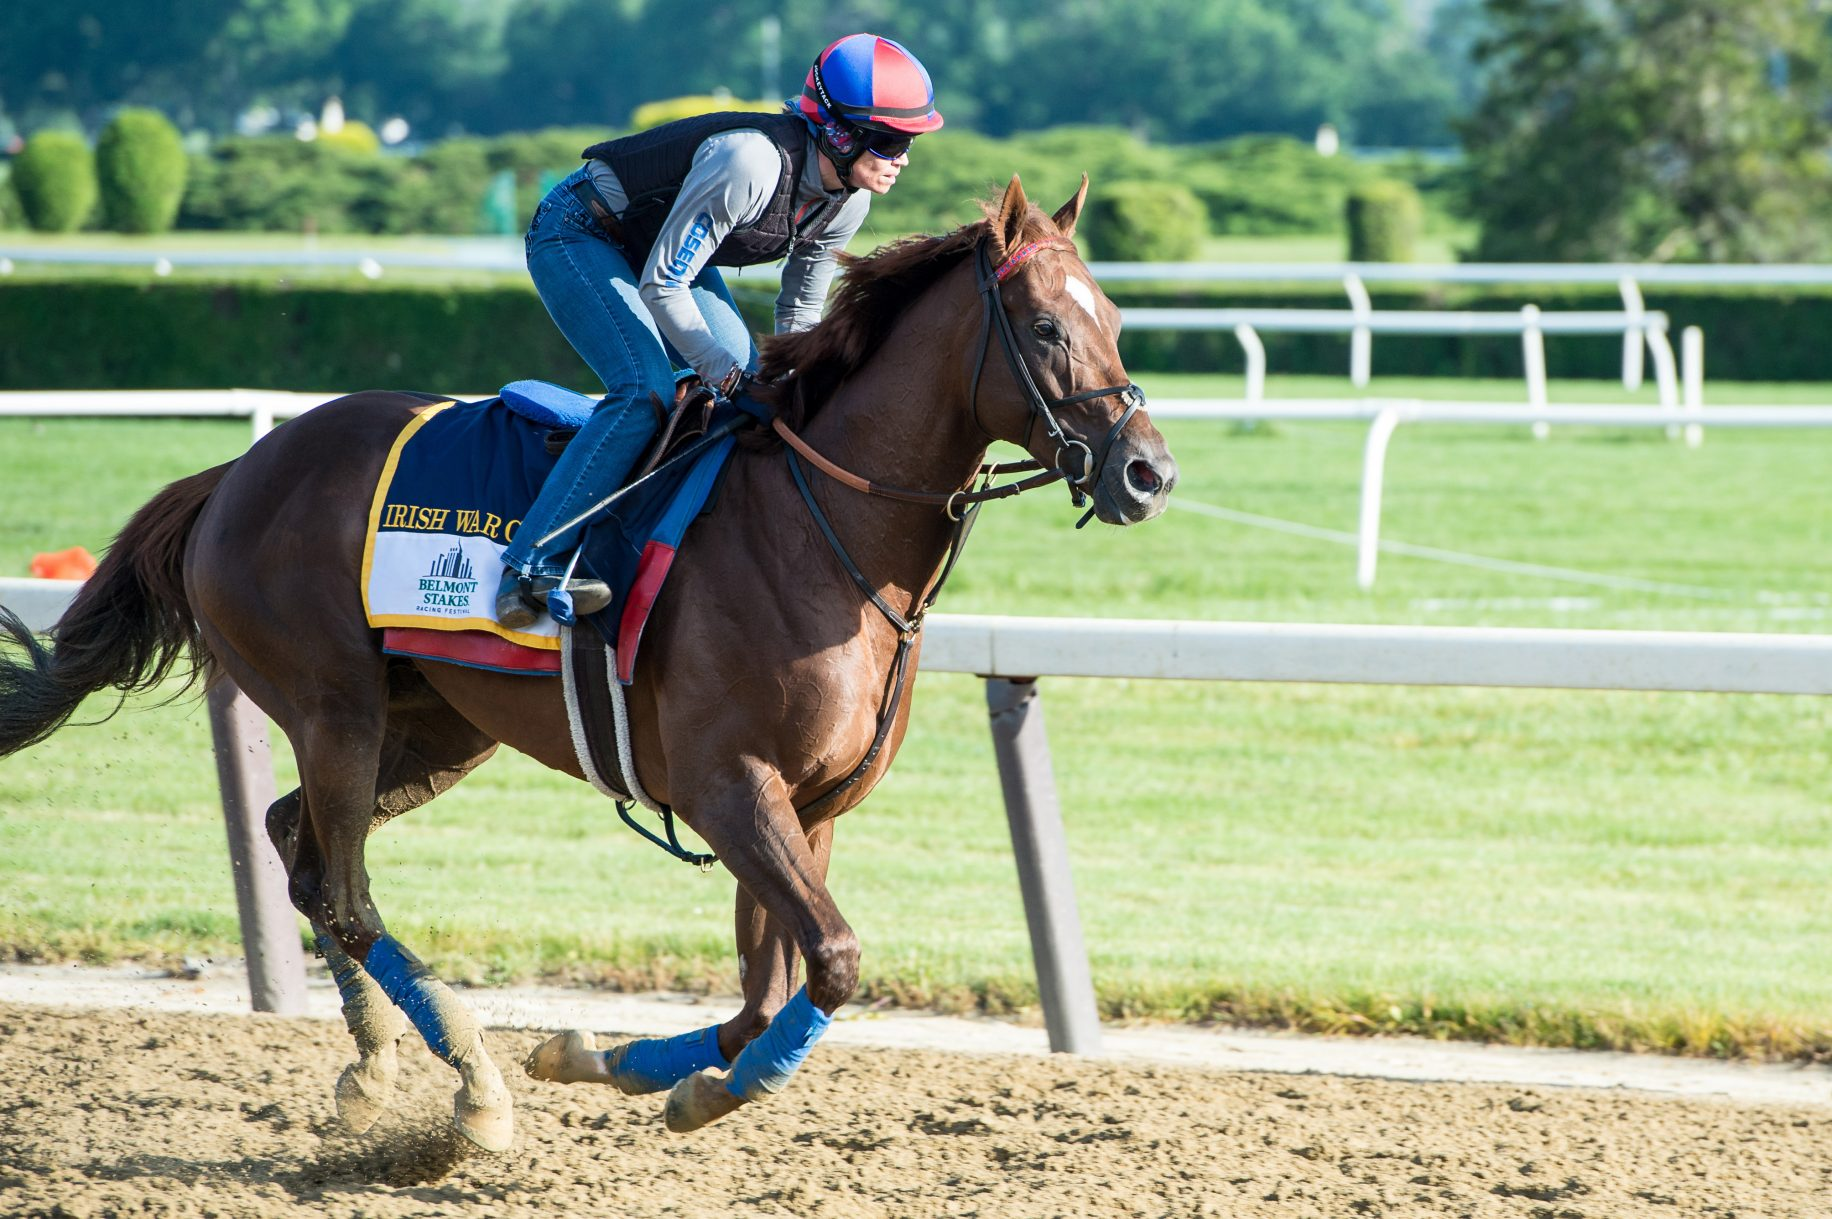 2017 Belmont Stakes Preview and Analysis: Irish War Cry Morning Line Favorite 1